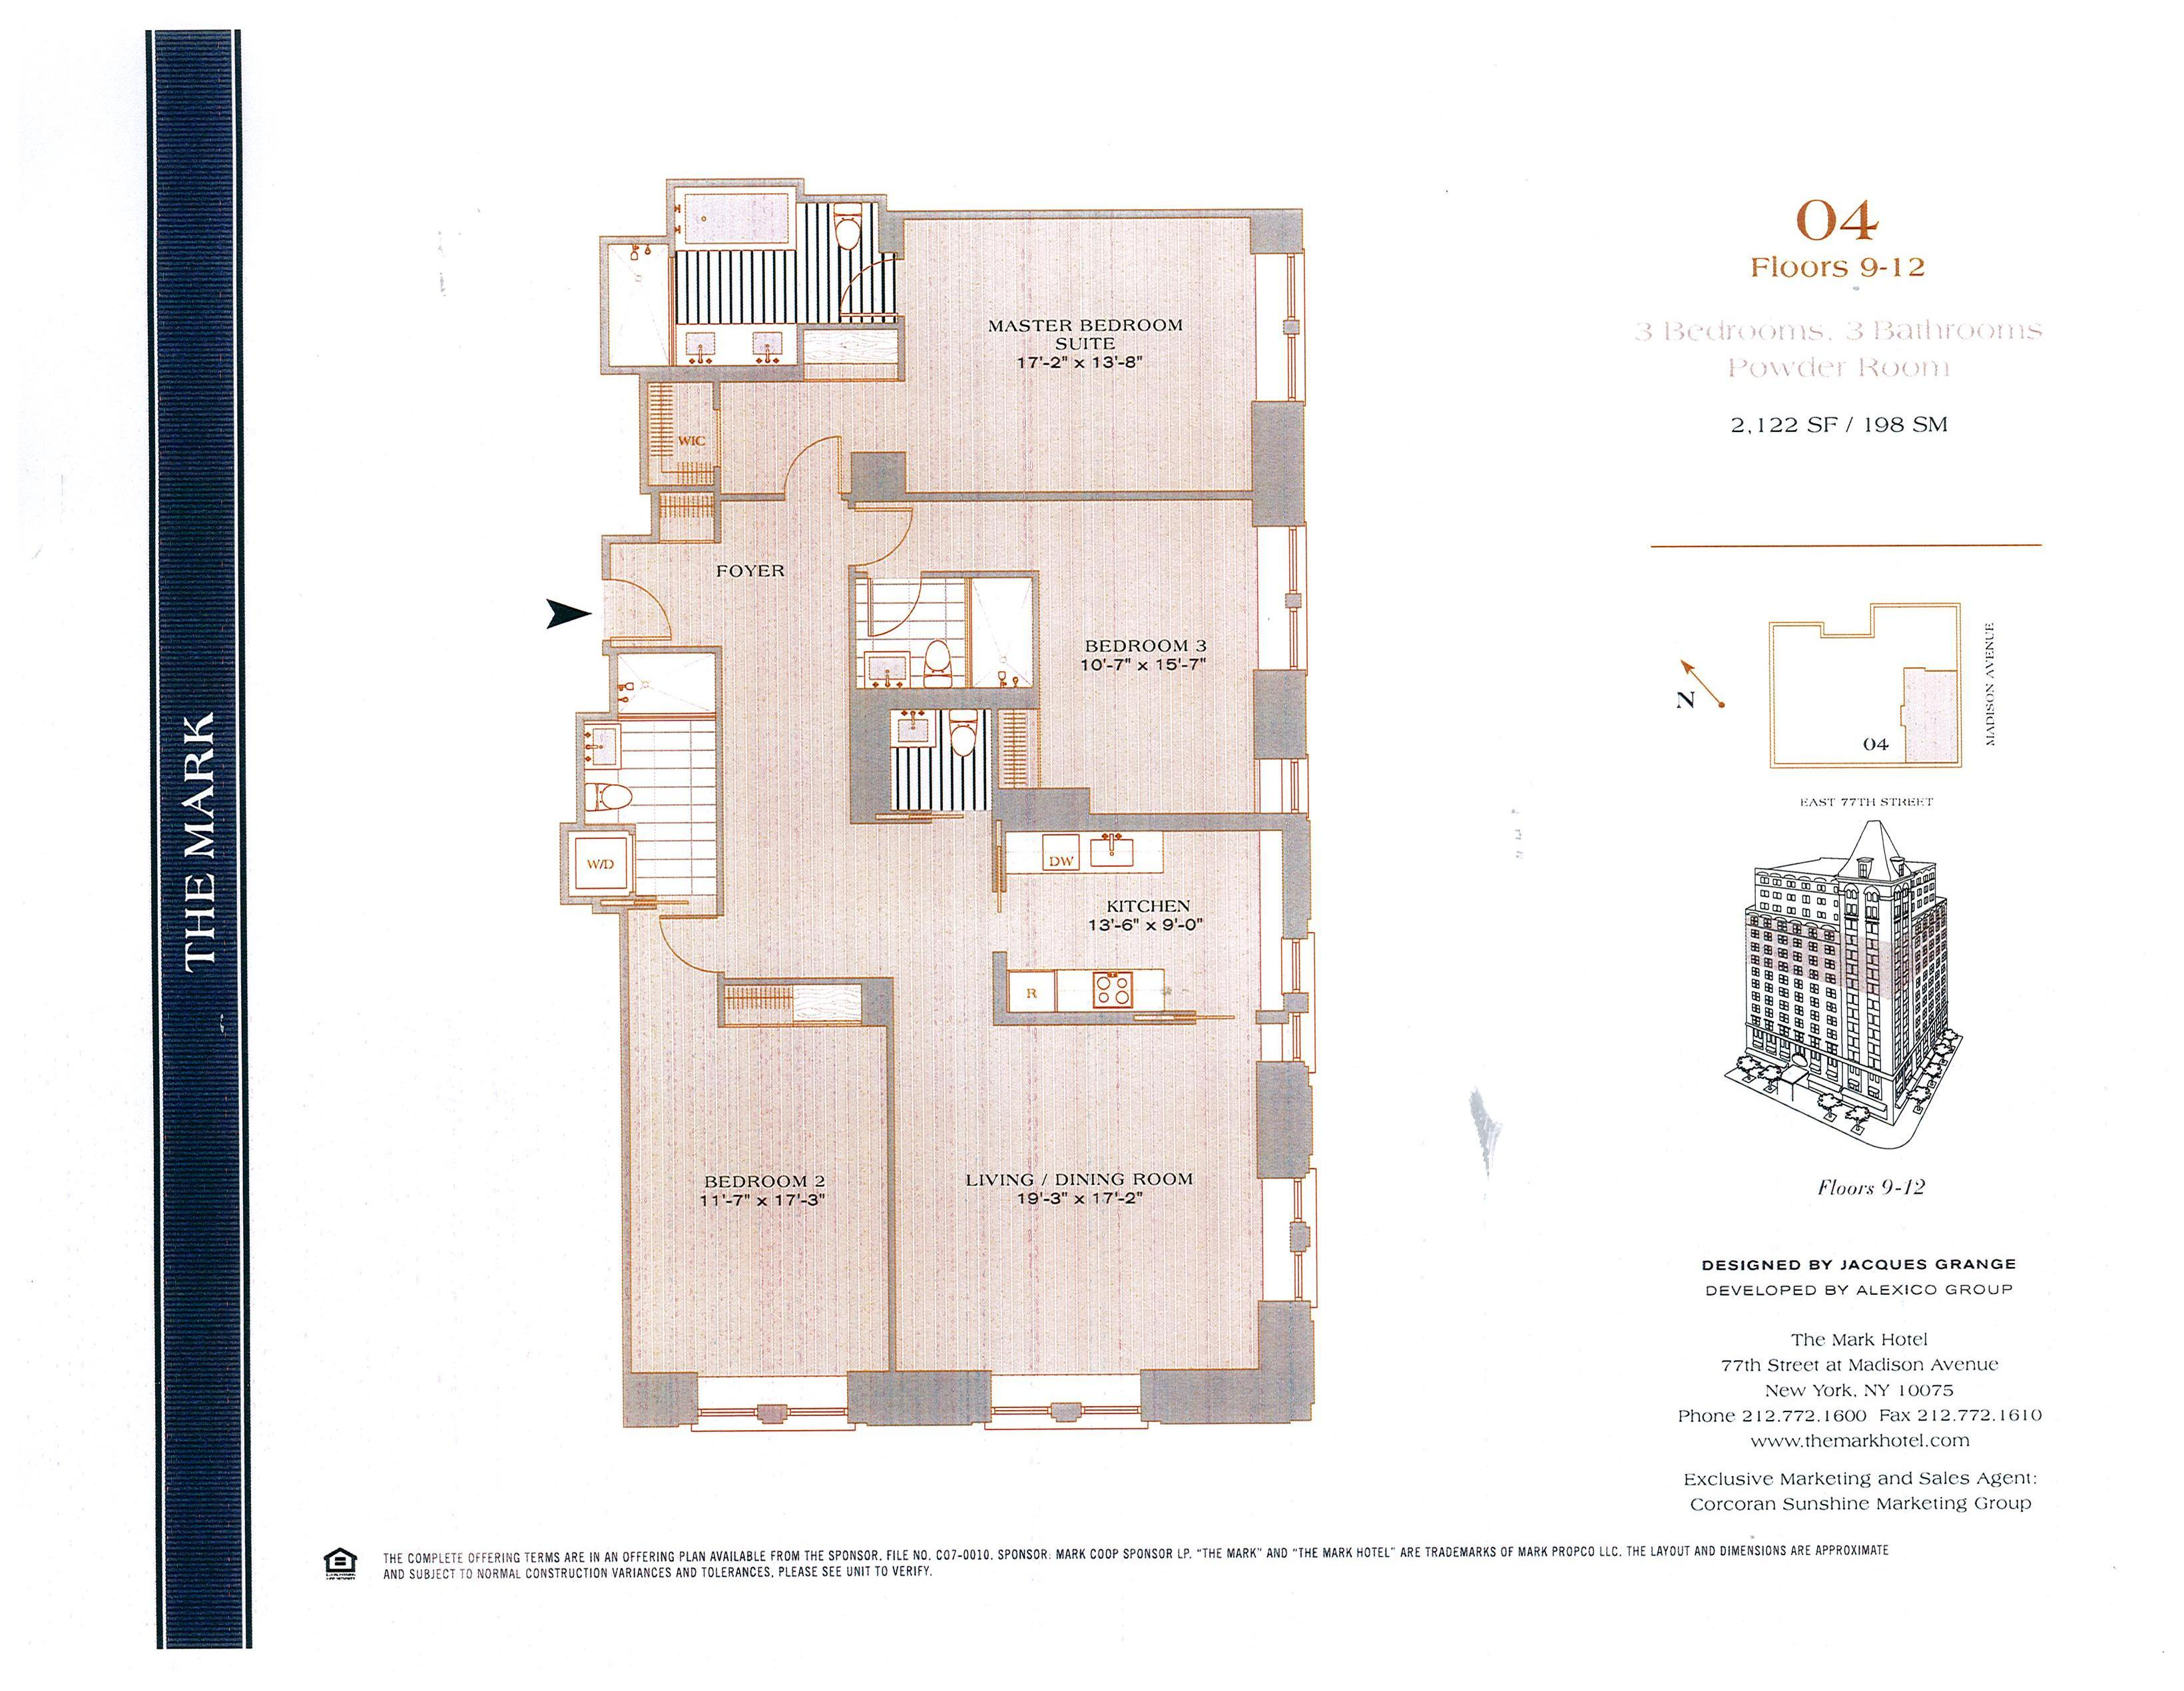 StreetEasy: 25 East 77th St. #1004 - Co-op Apartment Sale at The Mark in Upper East Side, Manhattan